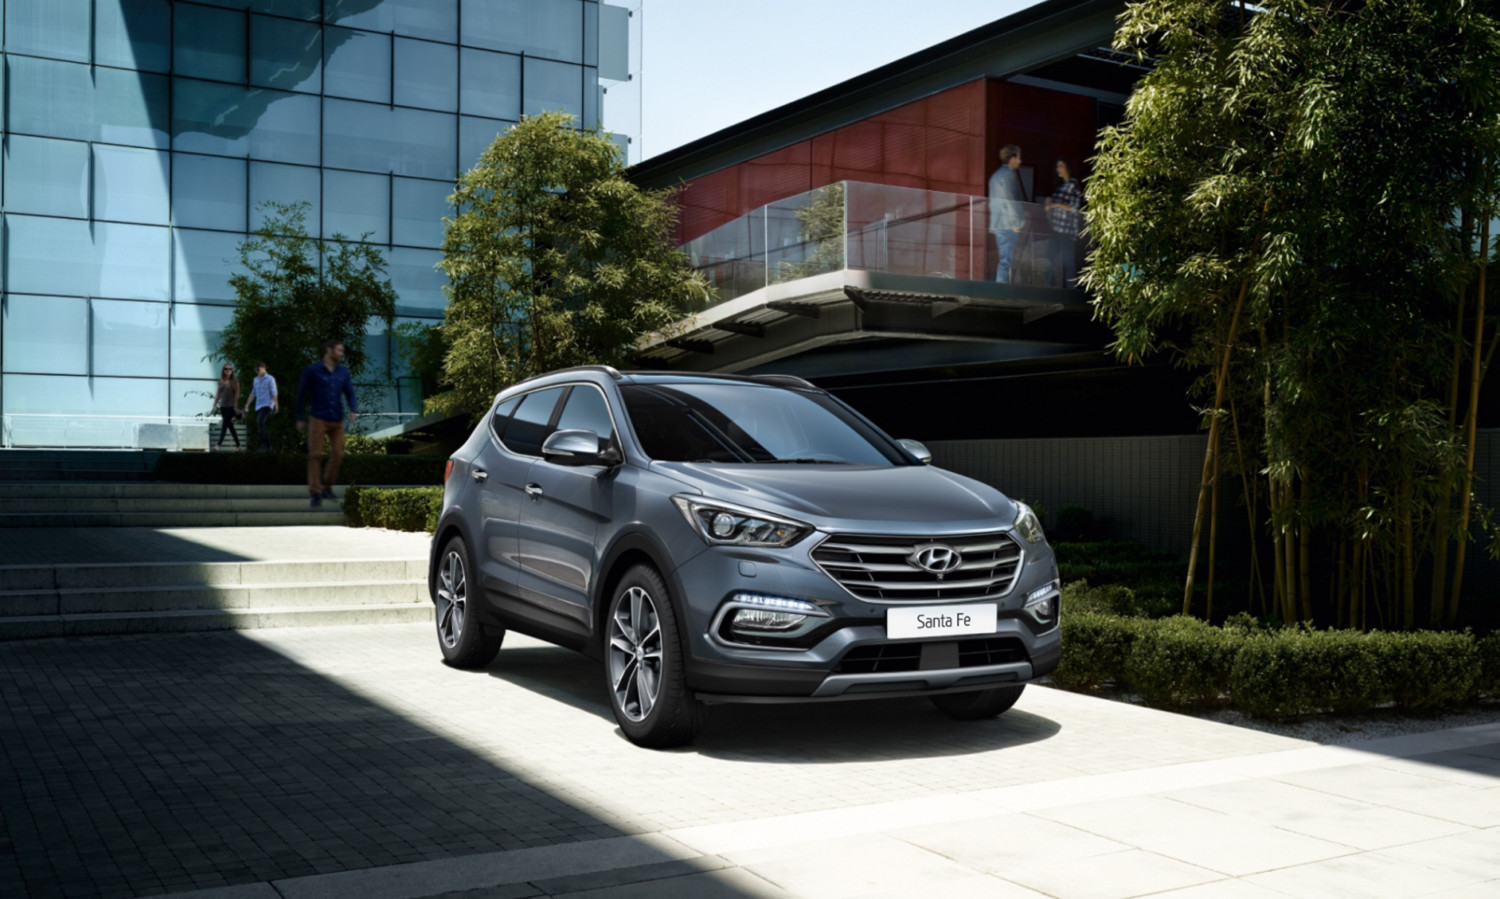 Hyundai Santa Fe Review 2016 Facelift Carsireland Ie